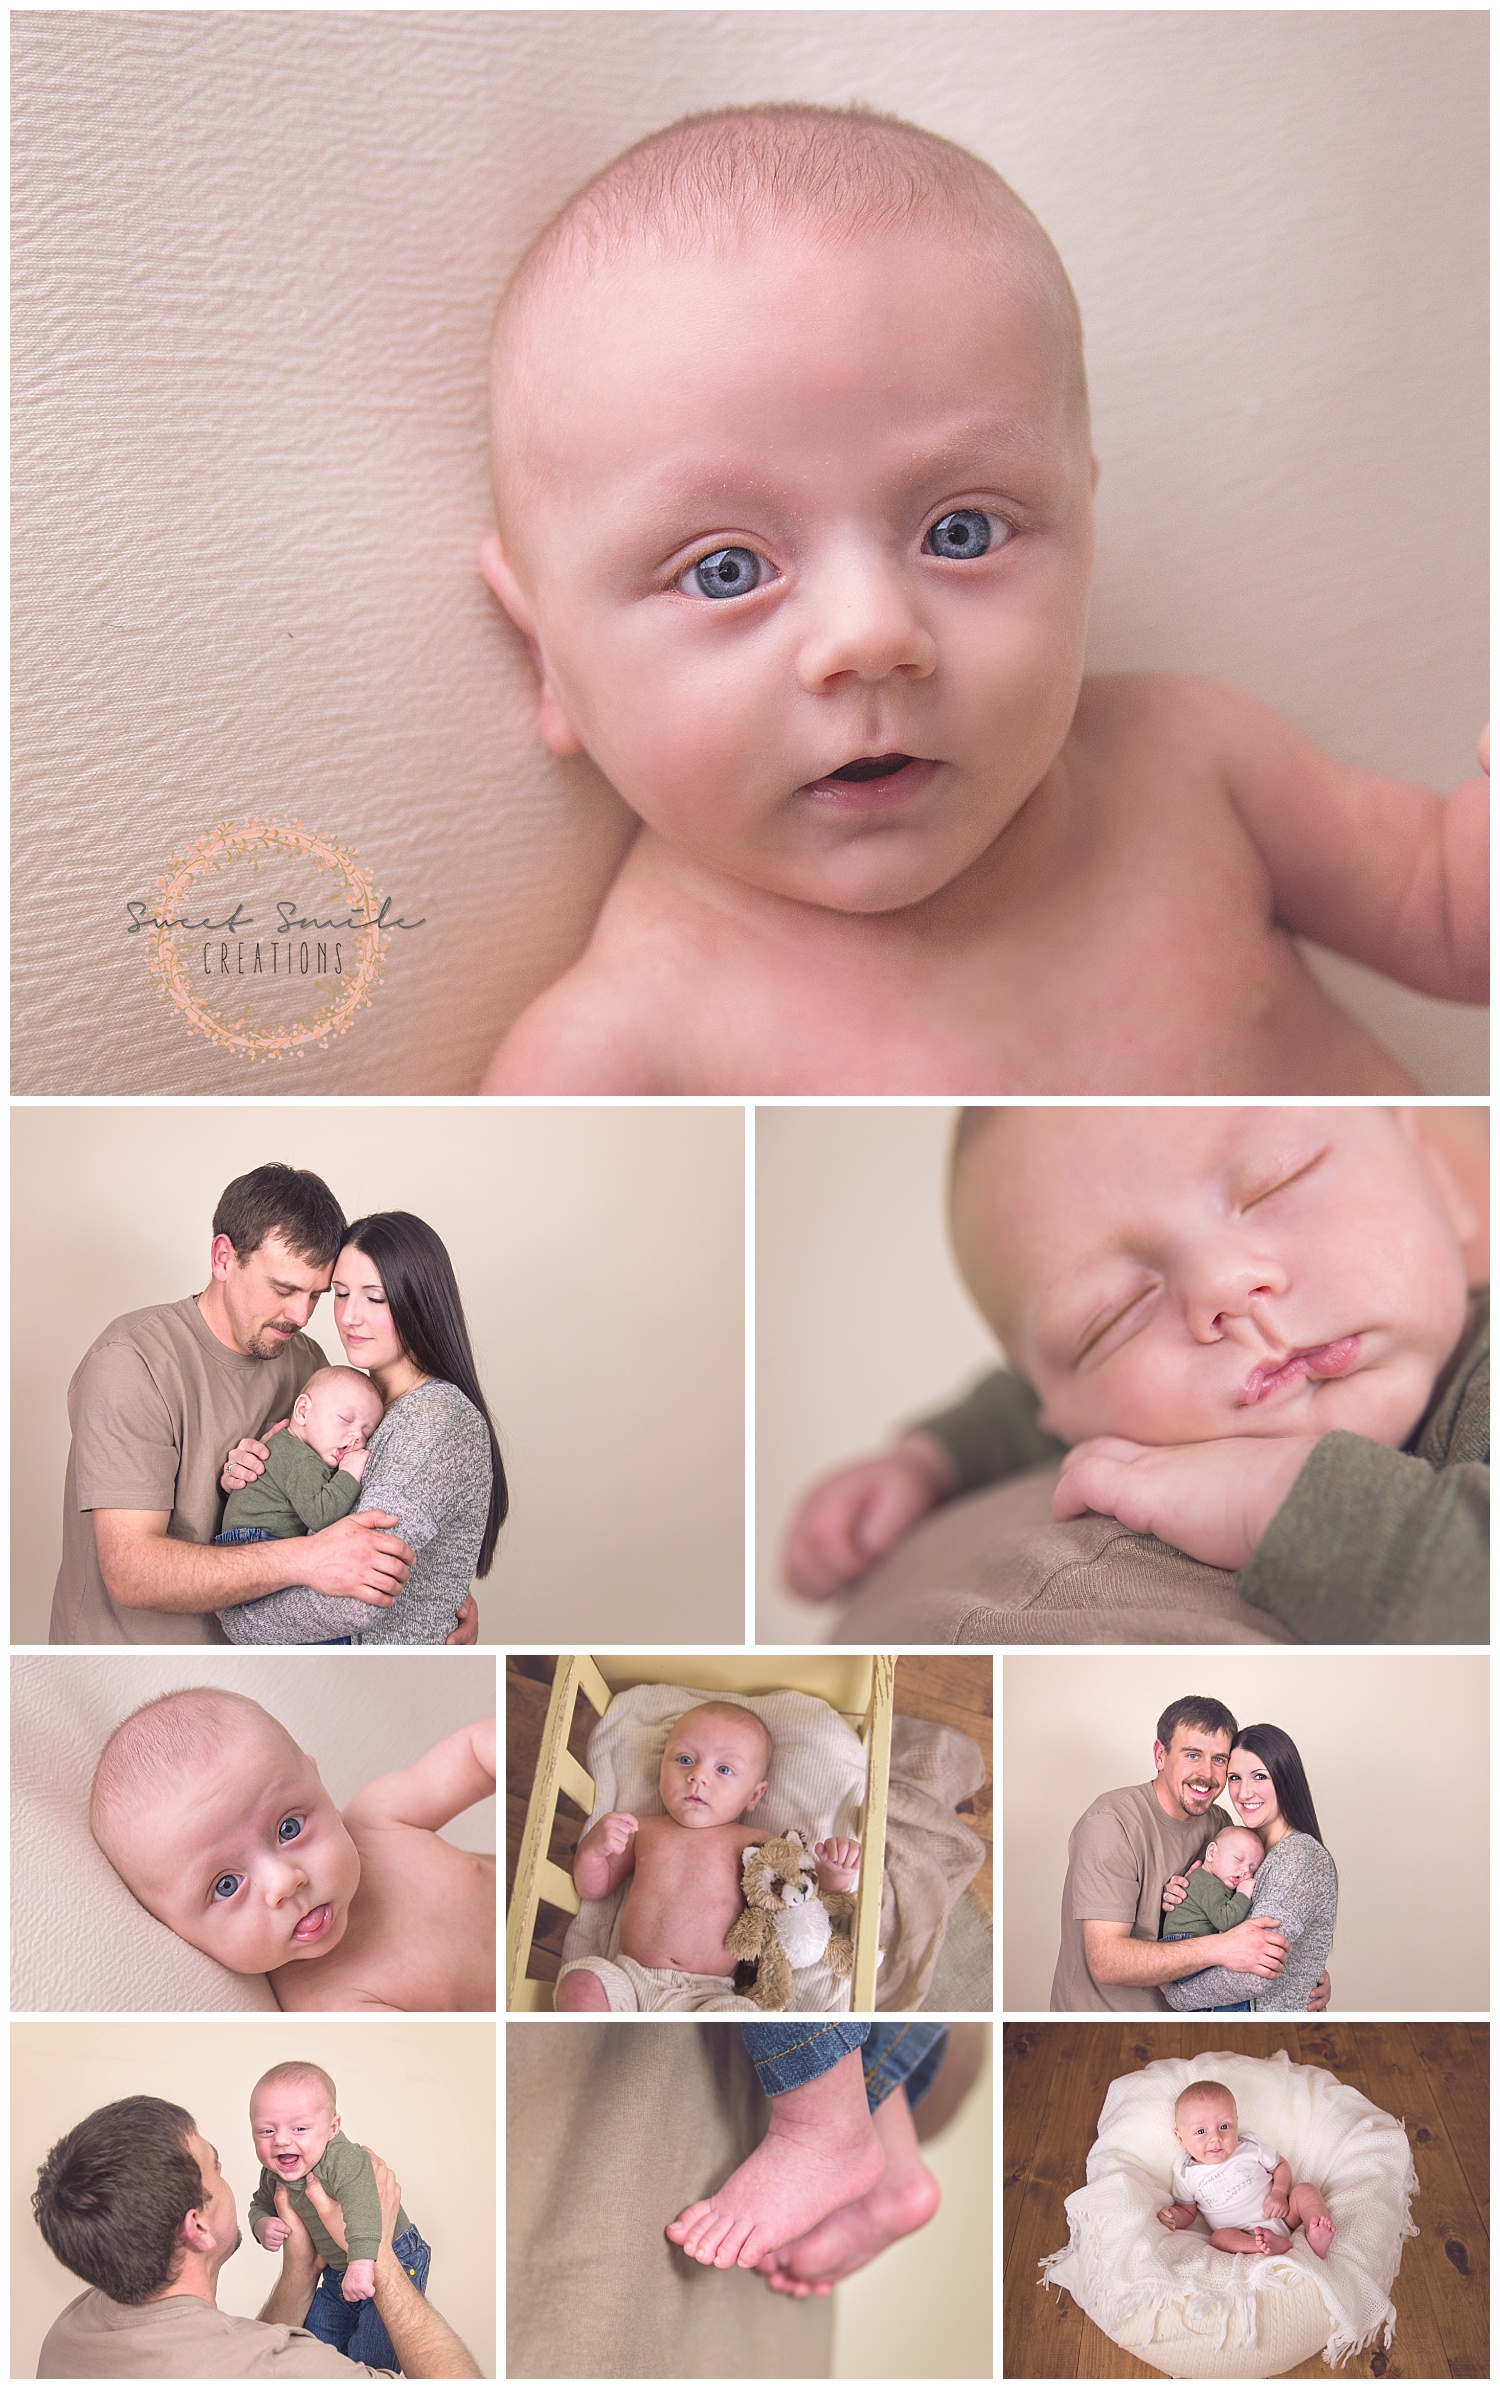 Baby Boy Photo session. Baby feet. sleeping on moms chest, laughing with dad. www.sweetsmilecreations.com